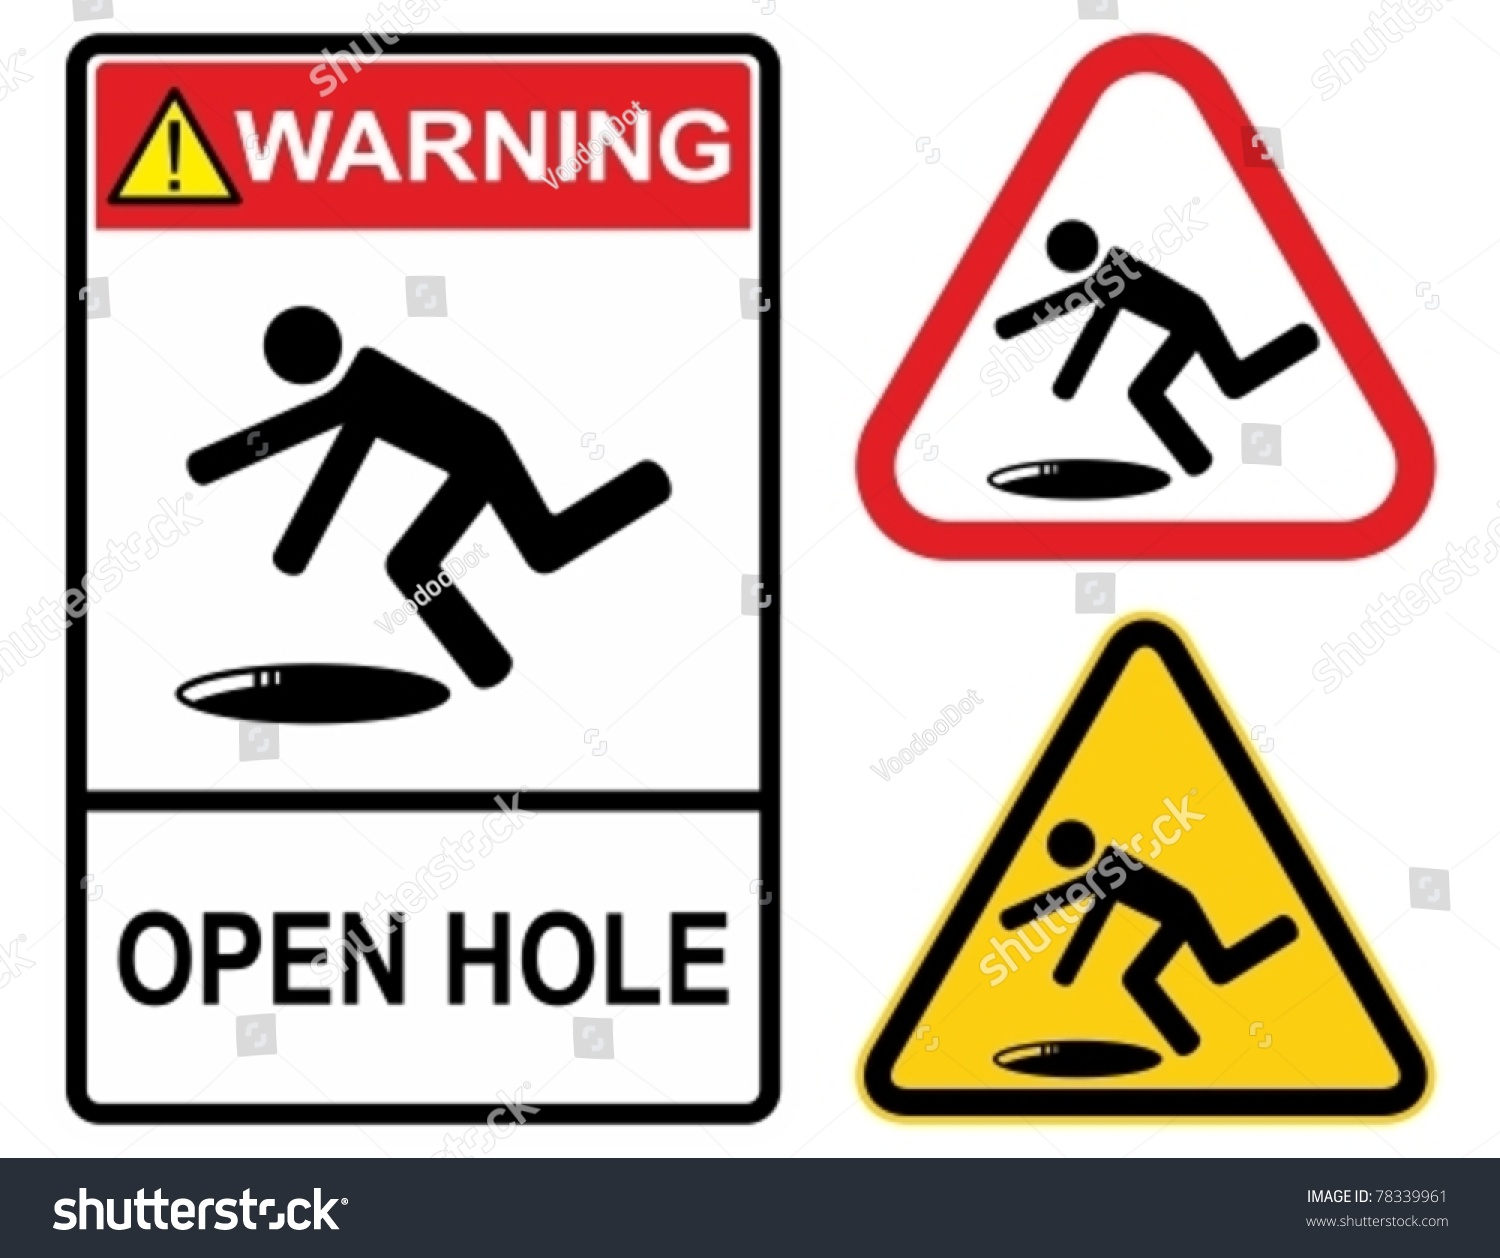 Open Hole Warning Sign Construction Industry Stock Vector ...